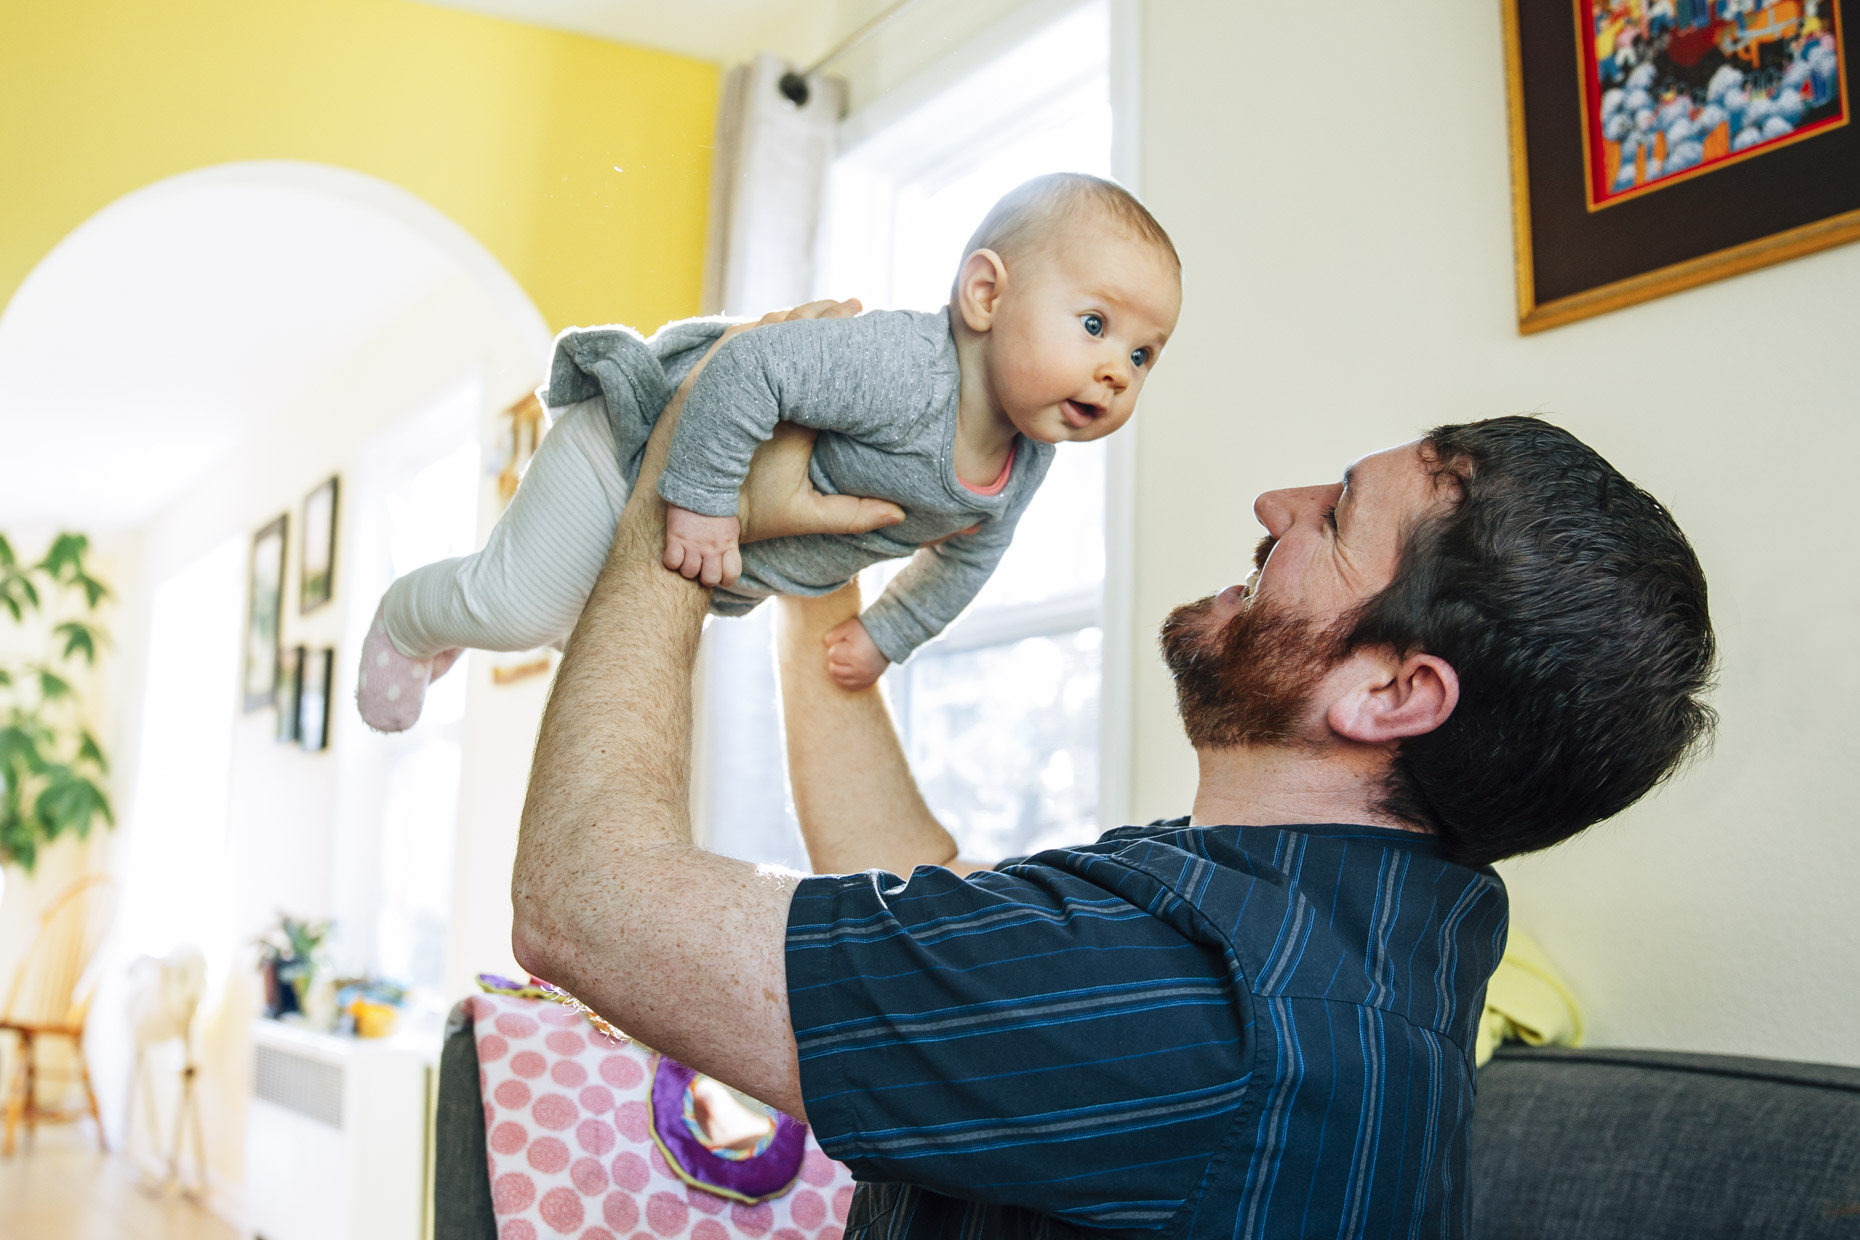 Man lifting baby into air in home